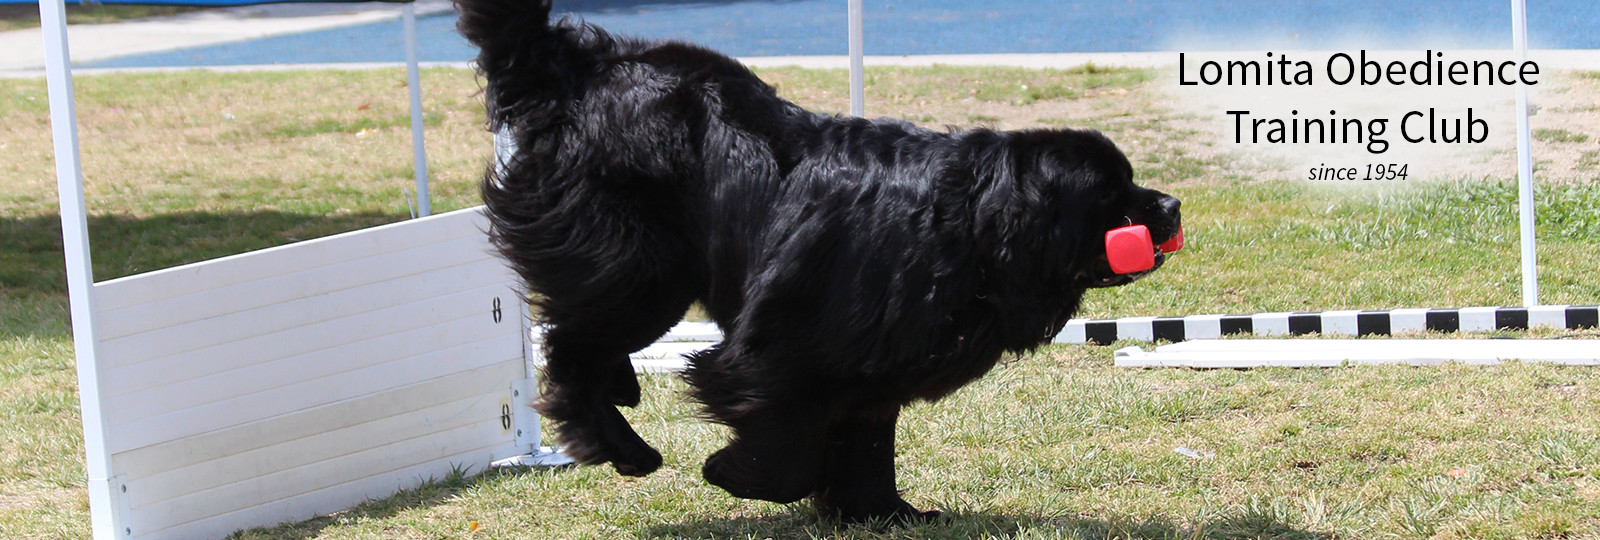 Lomita Dog Training - Newfie